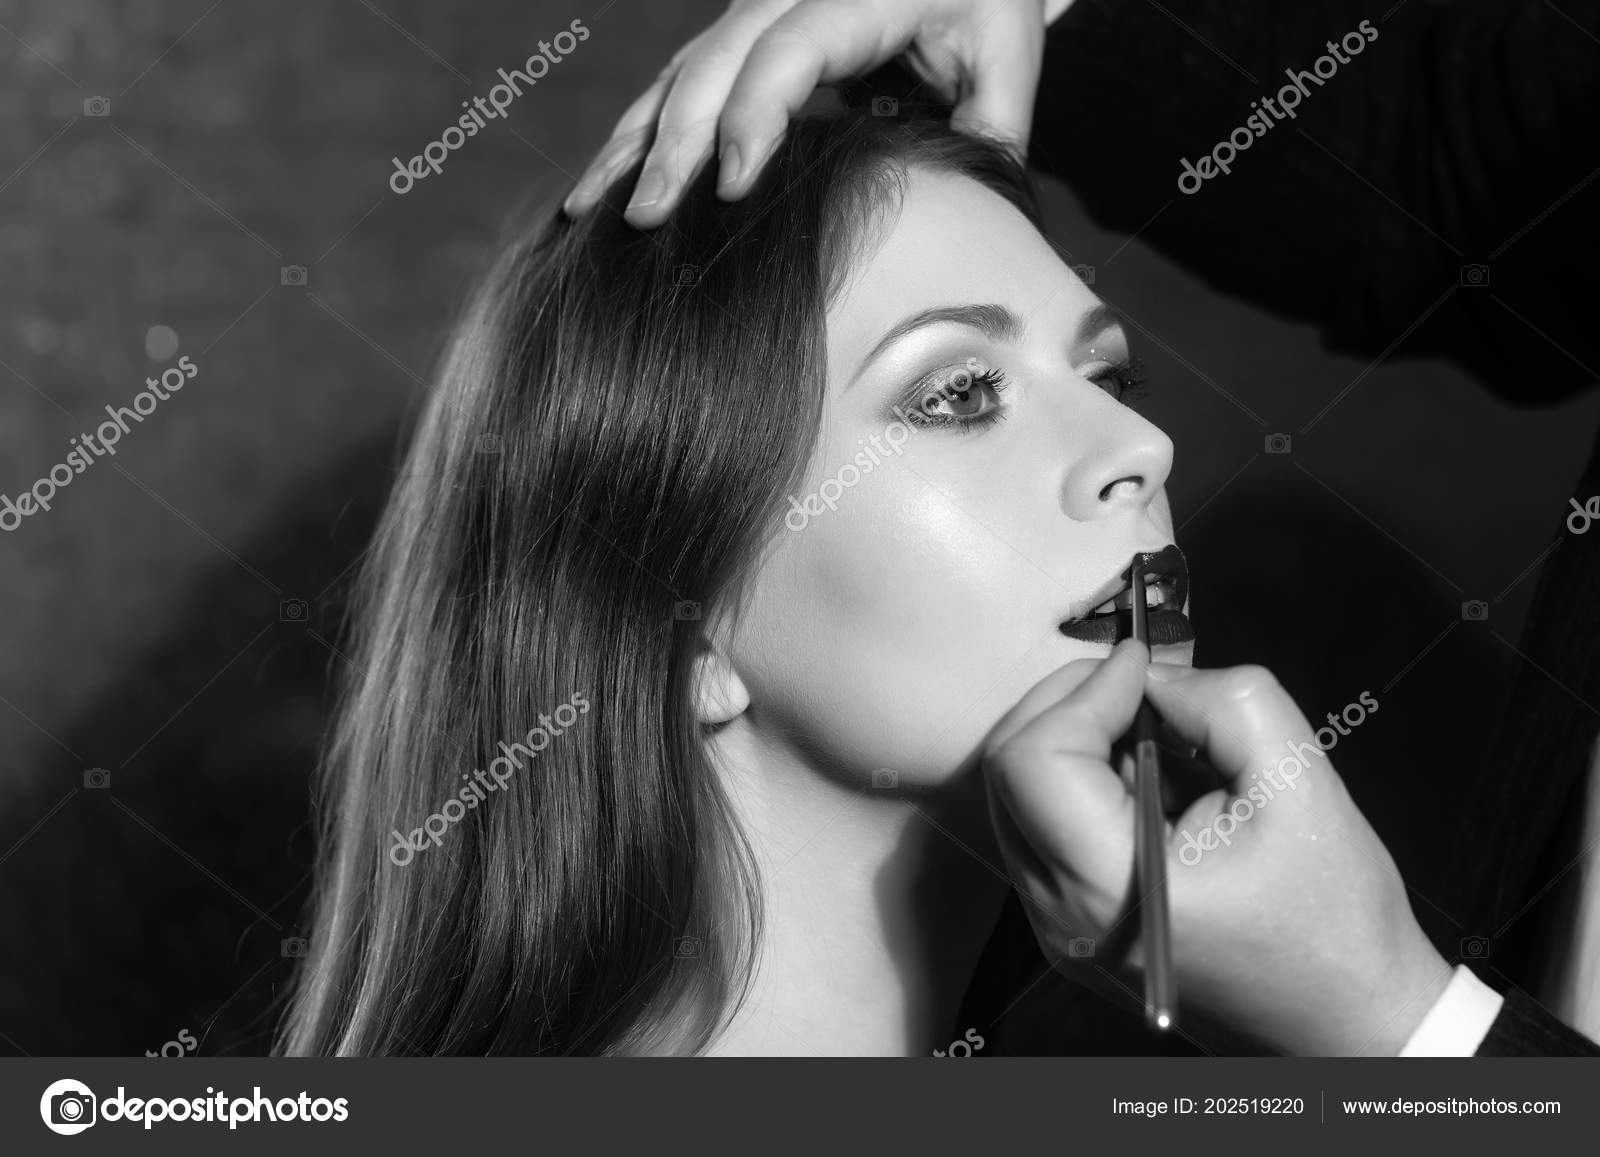 Application of lipstick  fashion model getting lips painted